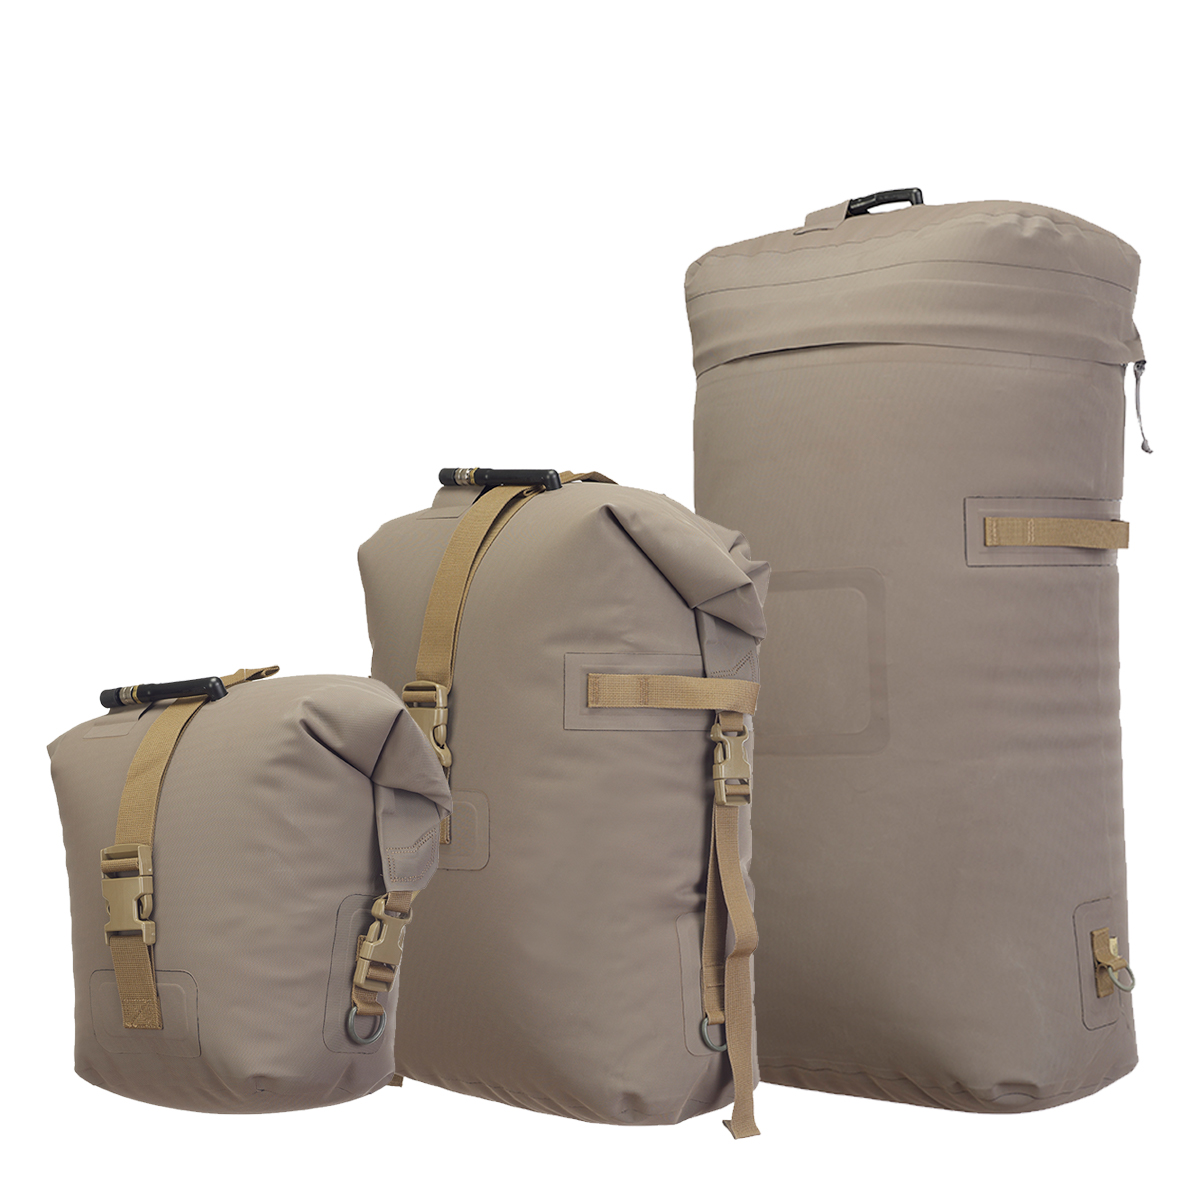 Sof Waterproof Bag System 3 Set